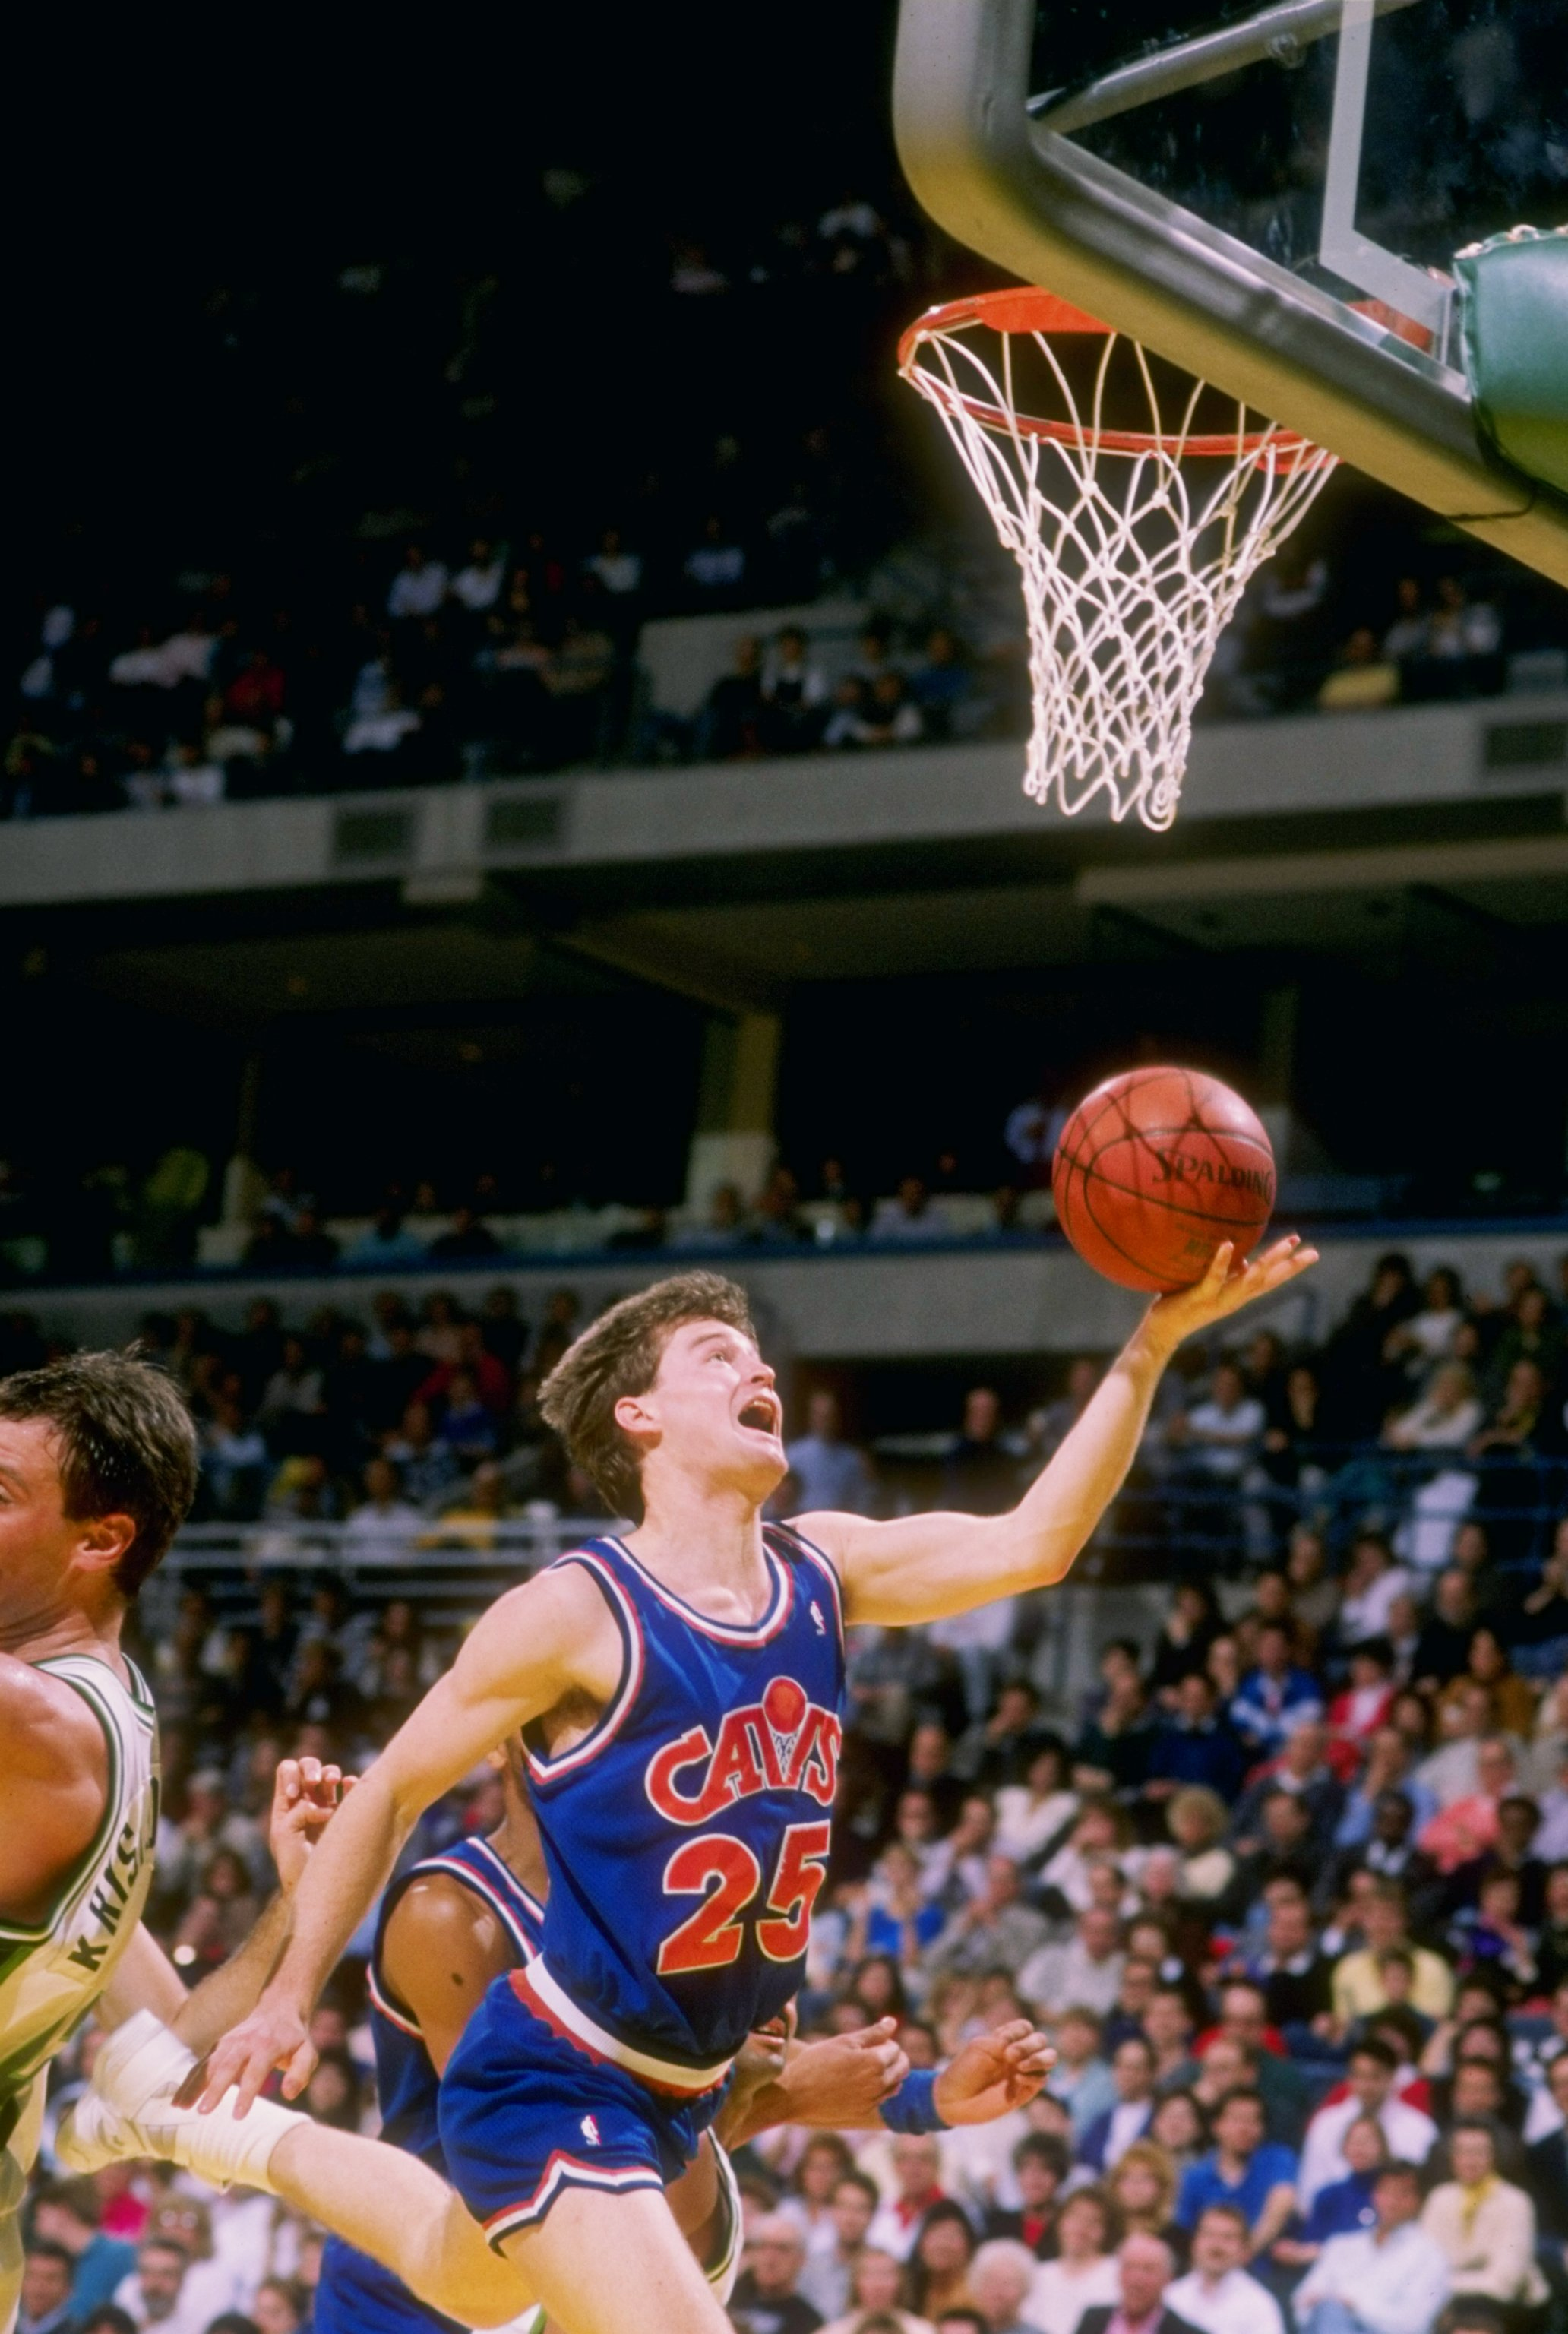 Guard Mark Price of the Cleveland Cavaliers heads for the basket during a game.